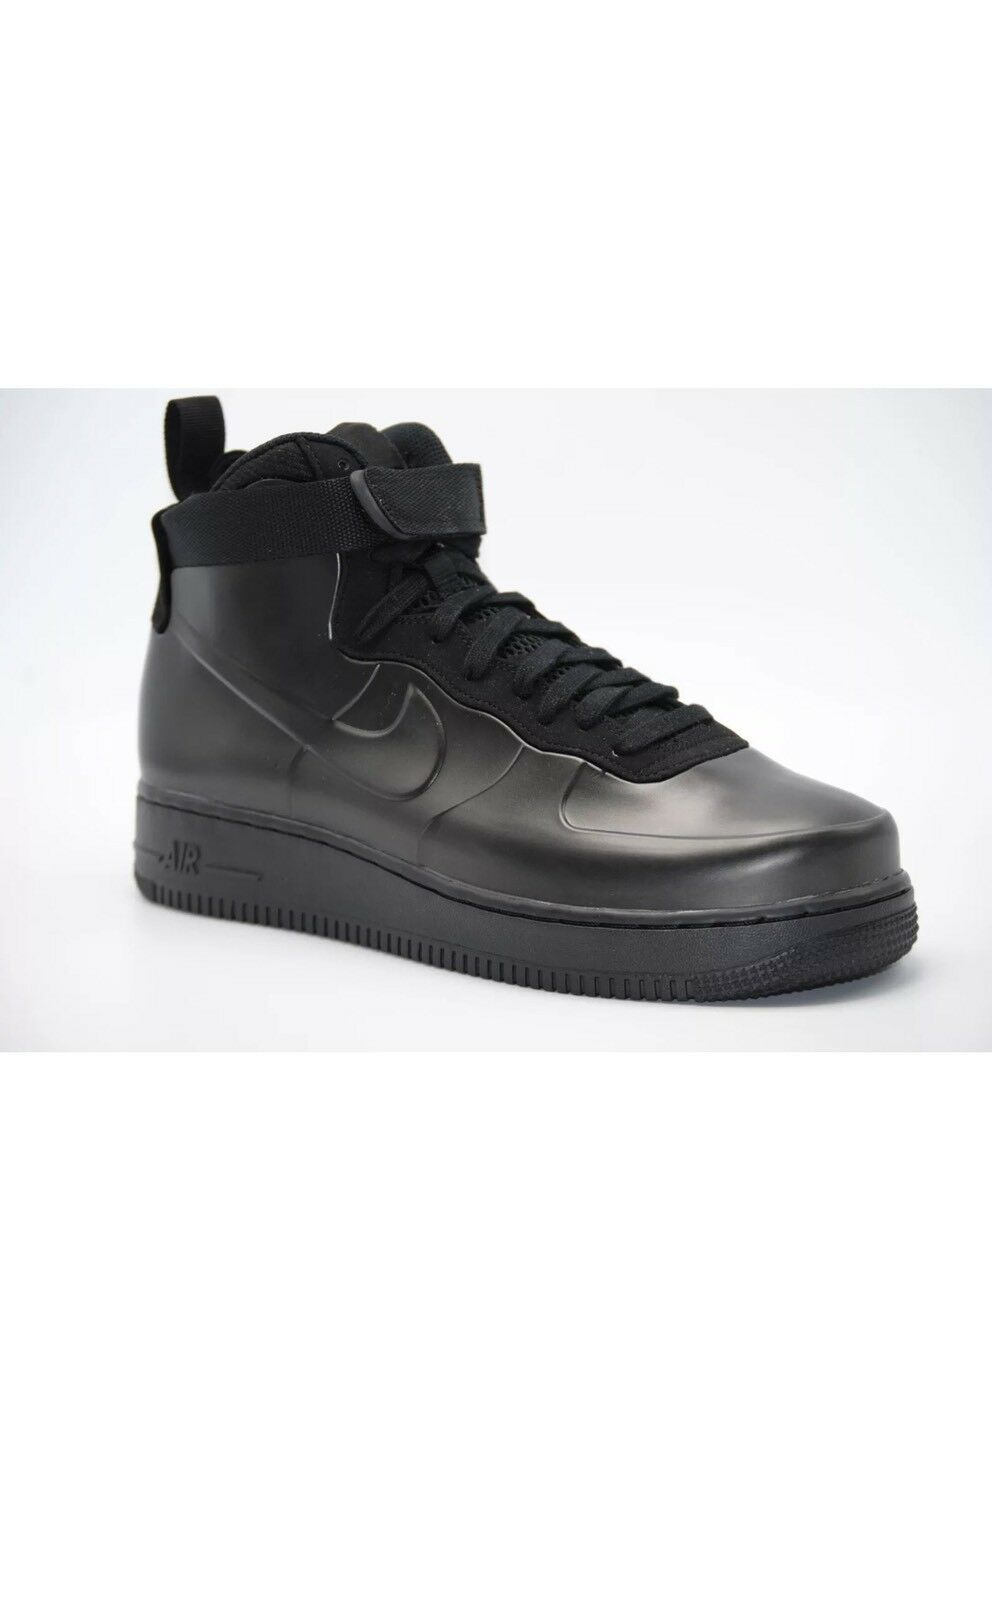 Price reduction NEW MEN'S NIKE AIR FORCE 1 FOAMPOSITE CUP BLACK BLACK BLACK LE989 Seasonal price cuts, discount benefits